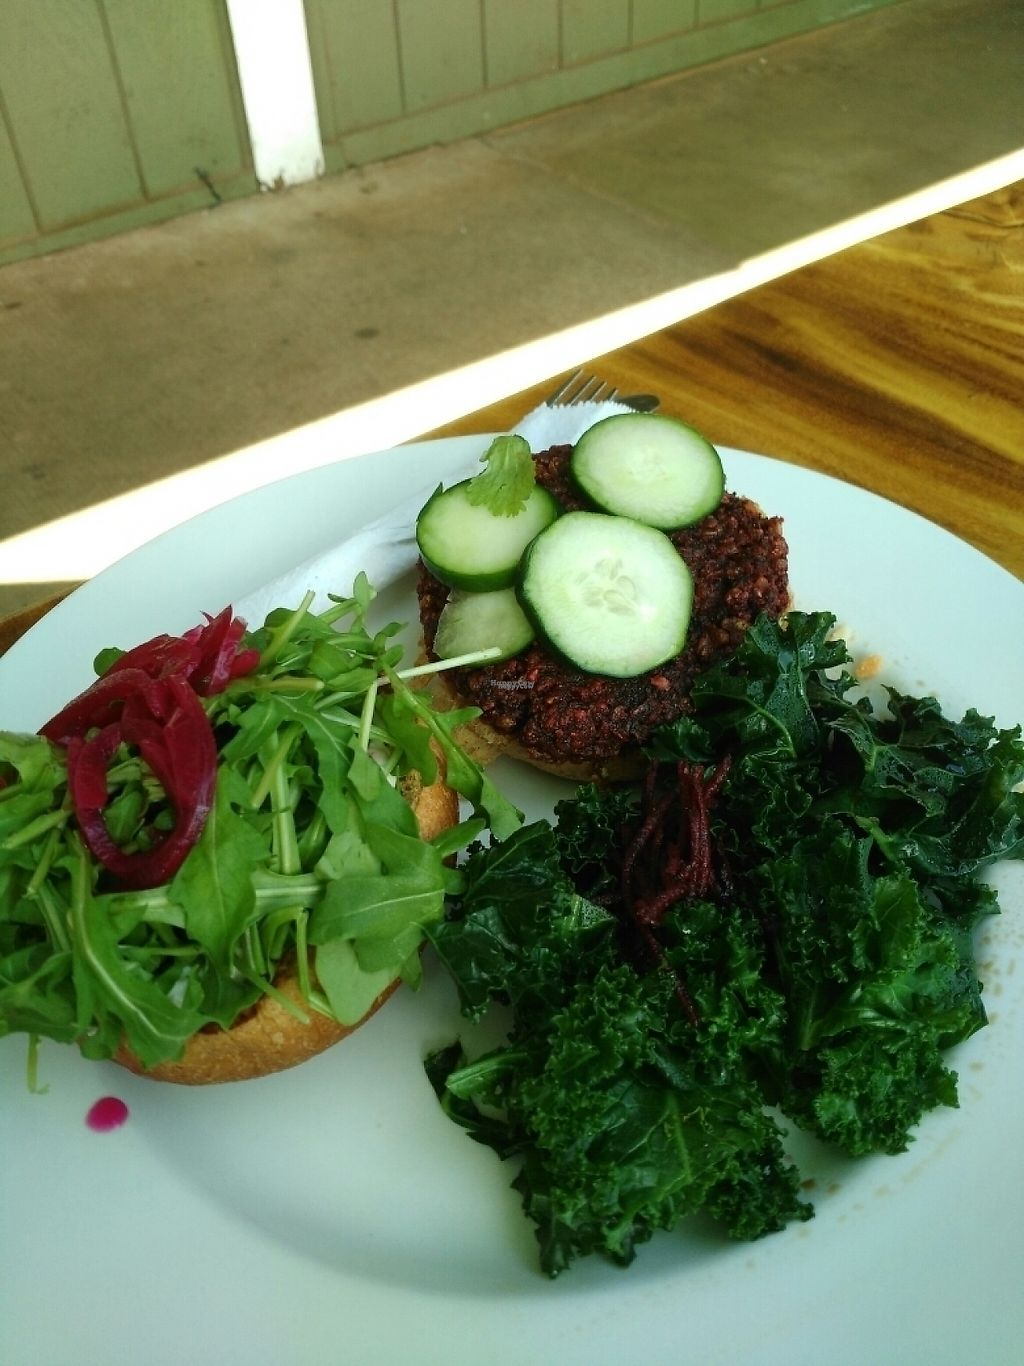 """Photo of The Beet Box Cafe  by <a href=""""/members/profile/Thienandjessie"""">Thienandjessie</a> <br/>hello burger <br/> March 14, 2017  - <a href='/contact/abuse/image/1925/236588'>Report</a>"""